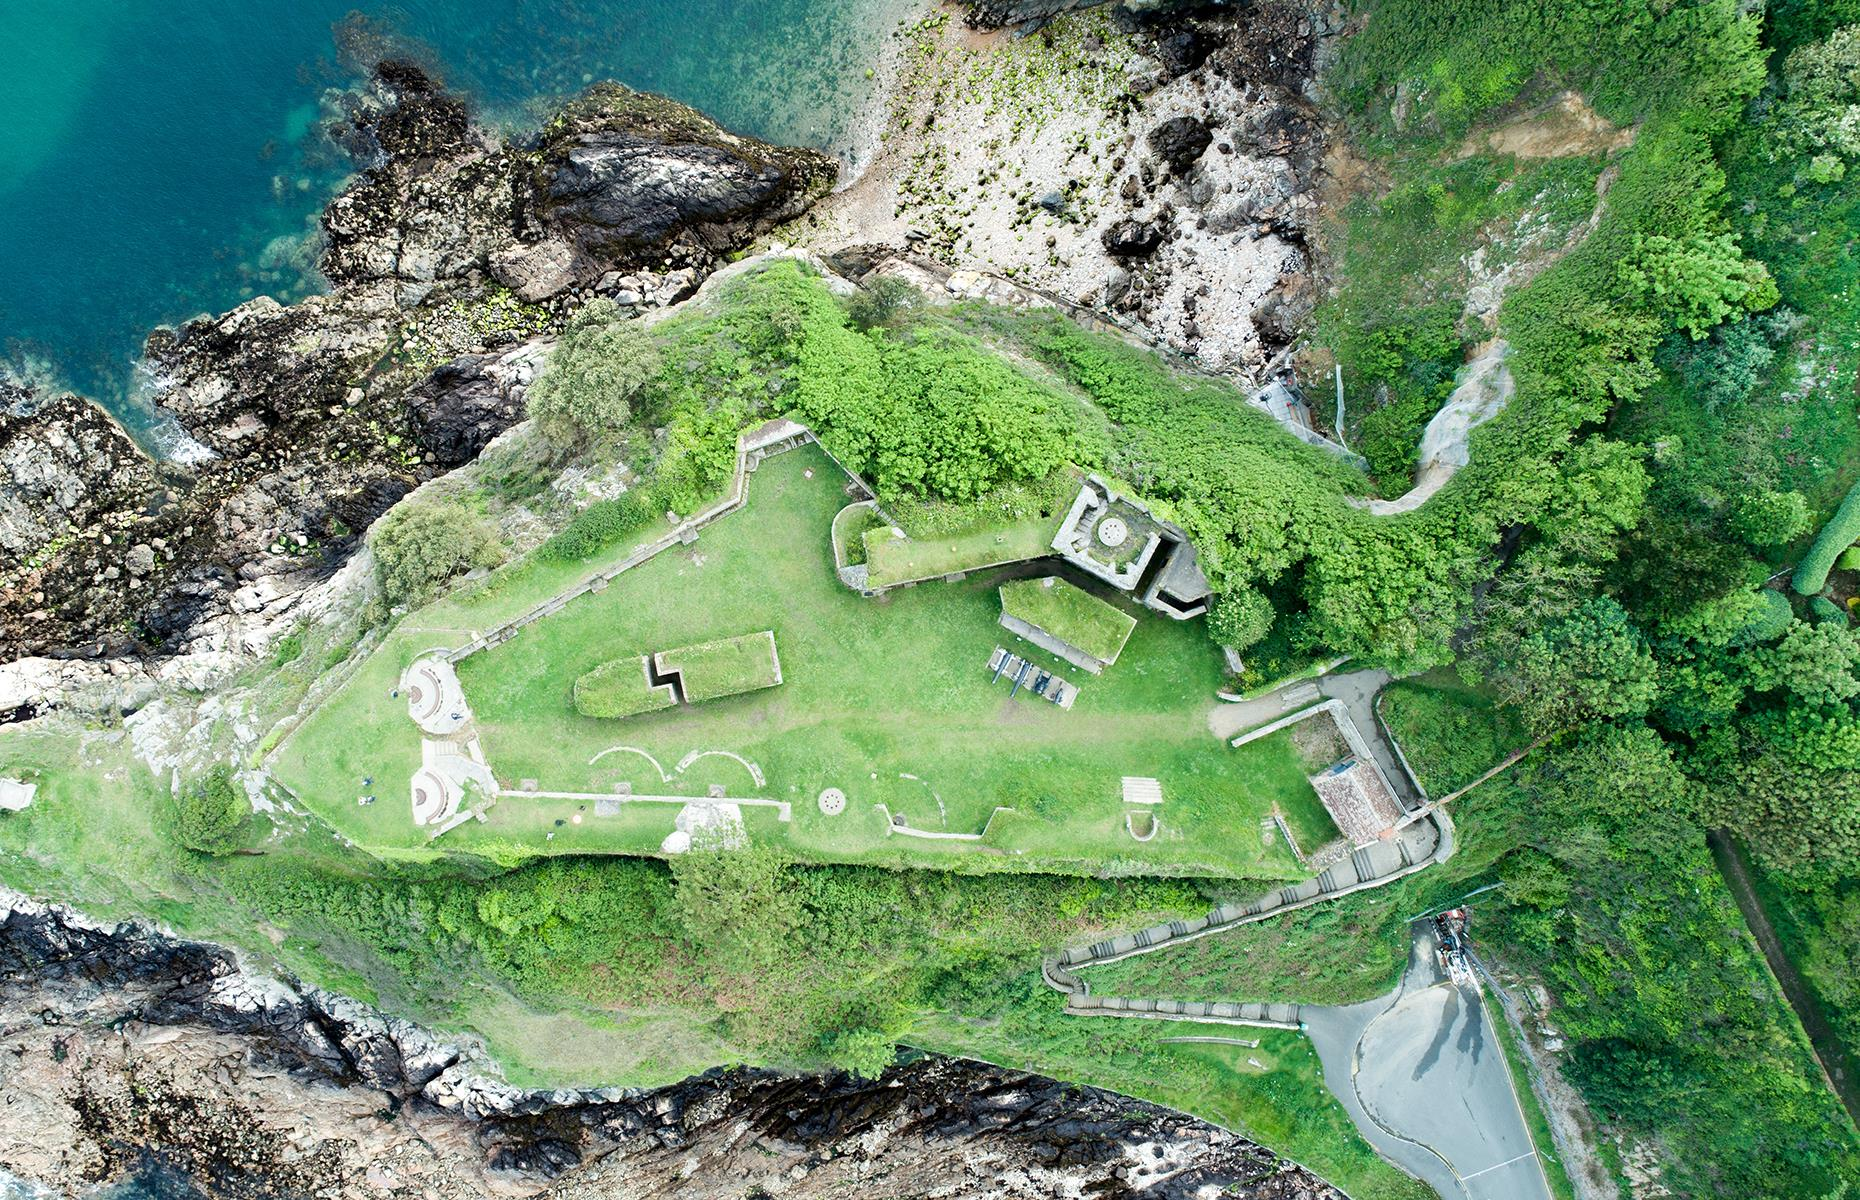 Slide 26 of 43: Built in 1780, Clarence Battery broods over the Channel Island of Guernsey. It's a well-preserved slice of history and this aerial snap shows the ruins of the defensive battery, as well as the rocky shoreline, the dense surrounding thickets and the lapping waves of the English Channel.